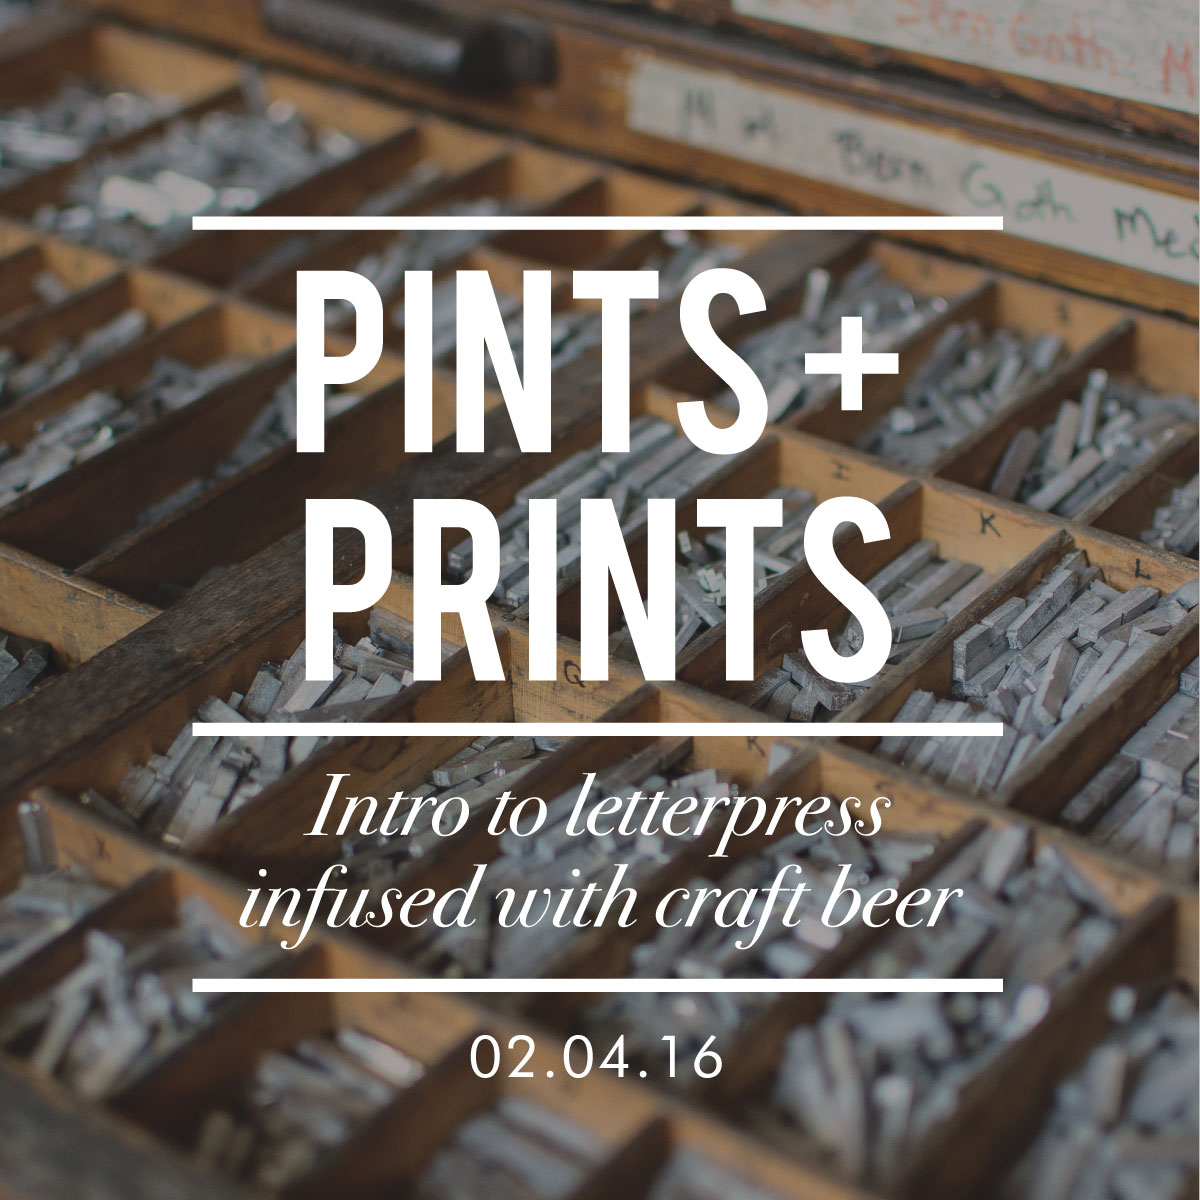 http://hartfordprints.com/shop/pints-prints-intro-letterpress-infused-craft-beer-copy/